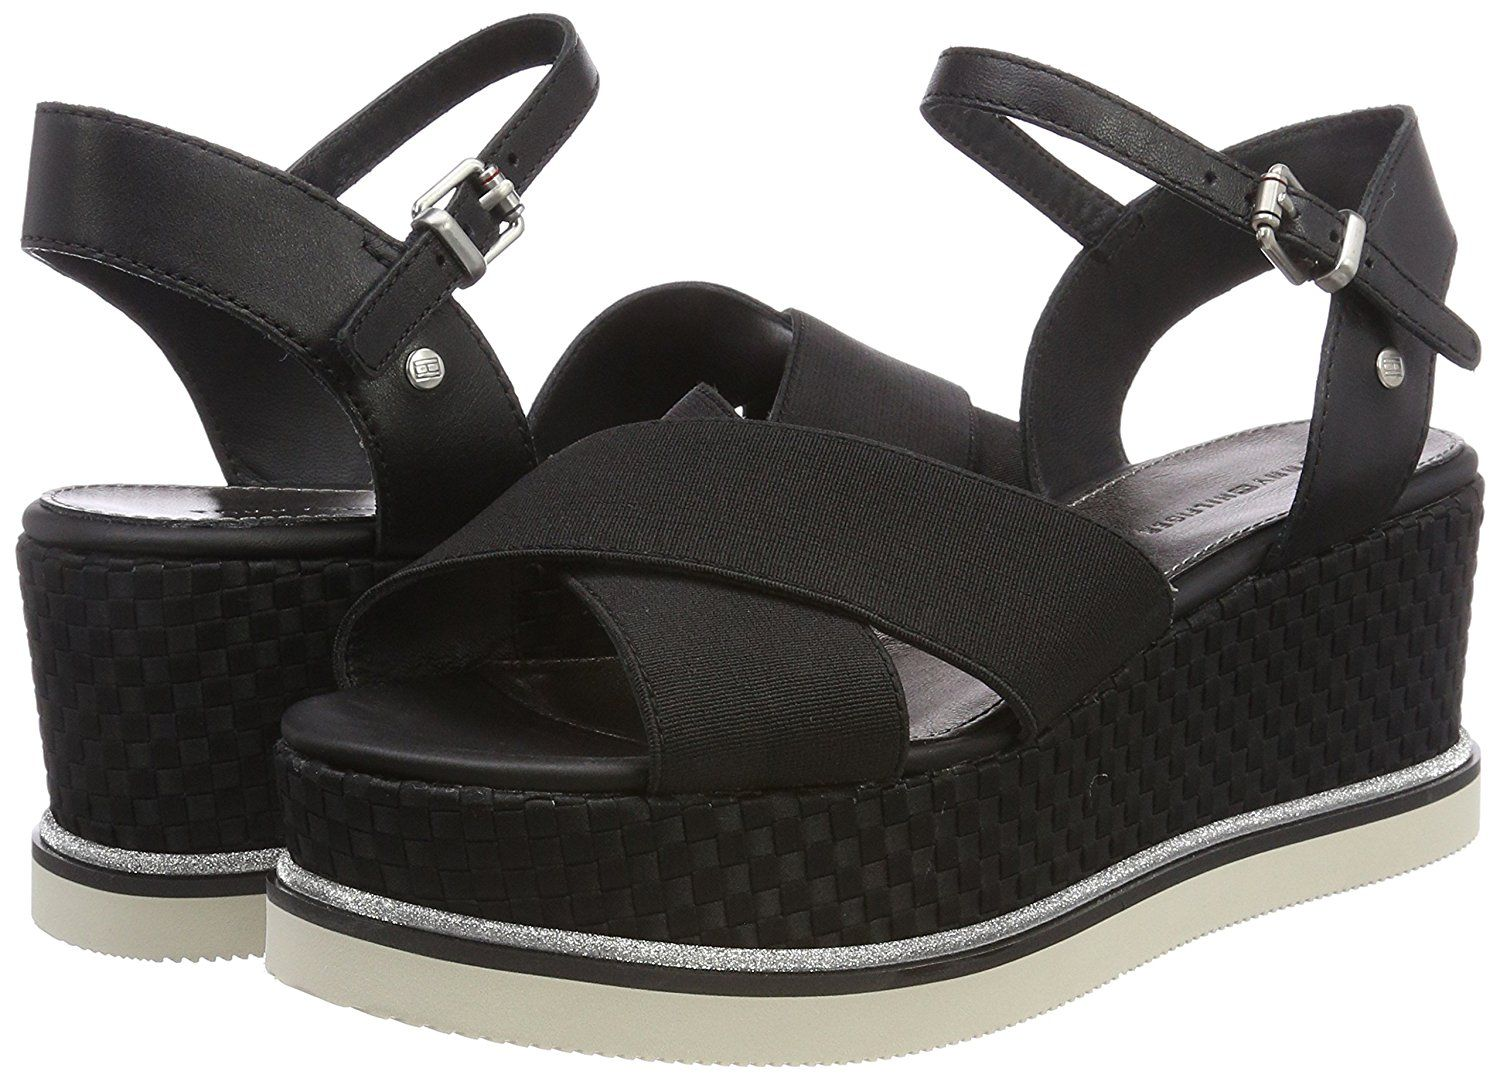 2316a7daf9552 Tommy Hilfiger Women s Sporty Stretch Flatform Sandals  Amazon.co.uk  Shoes